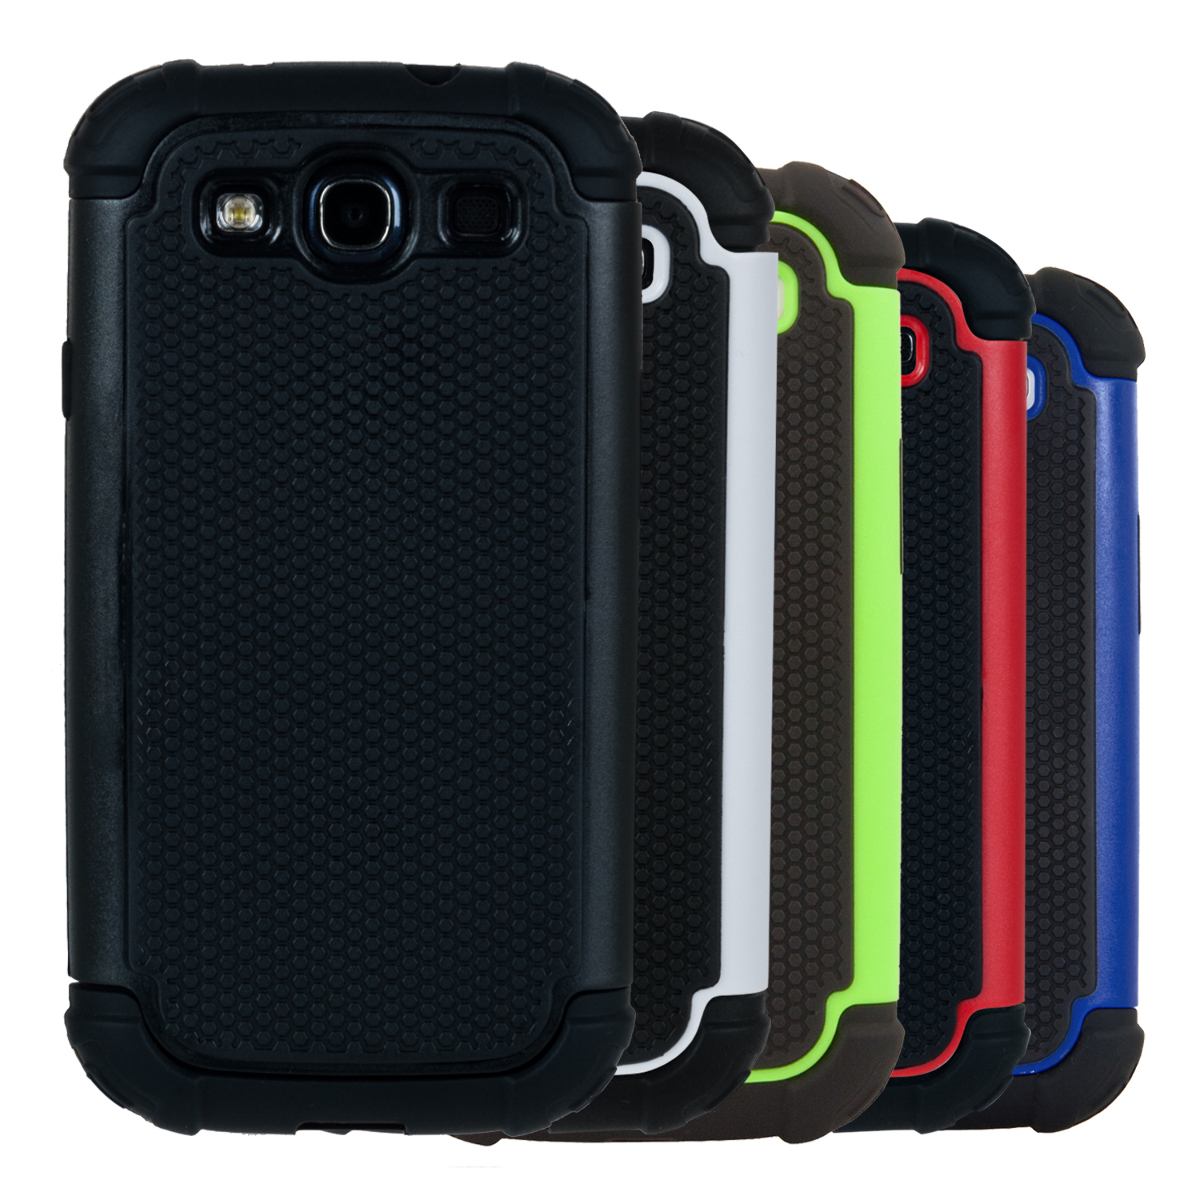 Tpu samsung galaxy s3 s3 neo - Kwmobile Hybrid Case For Samsung Galaxy S3 S3 Neo In Desired Colour Tpu Inner Case Hardcase Shield Perfect For Outdoor Usage Of Your Smartphone And